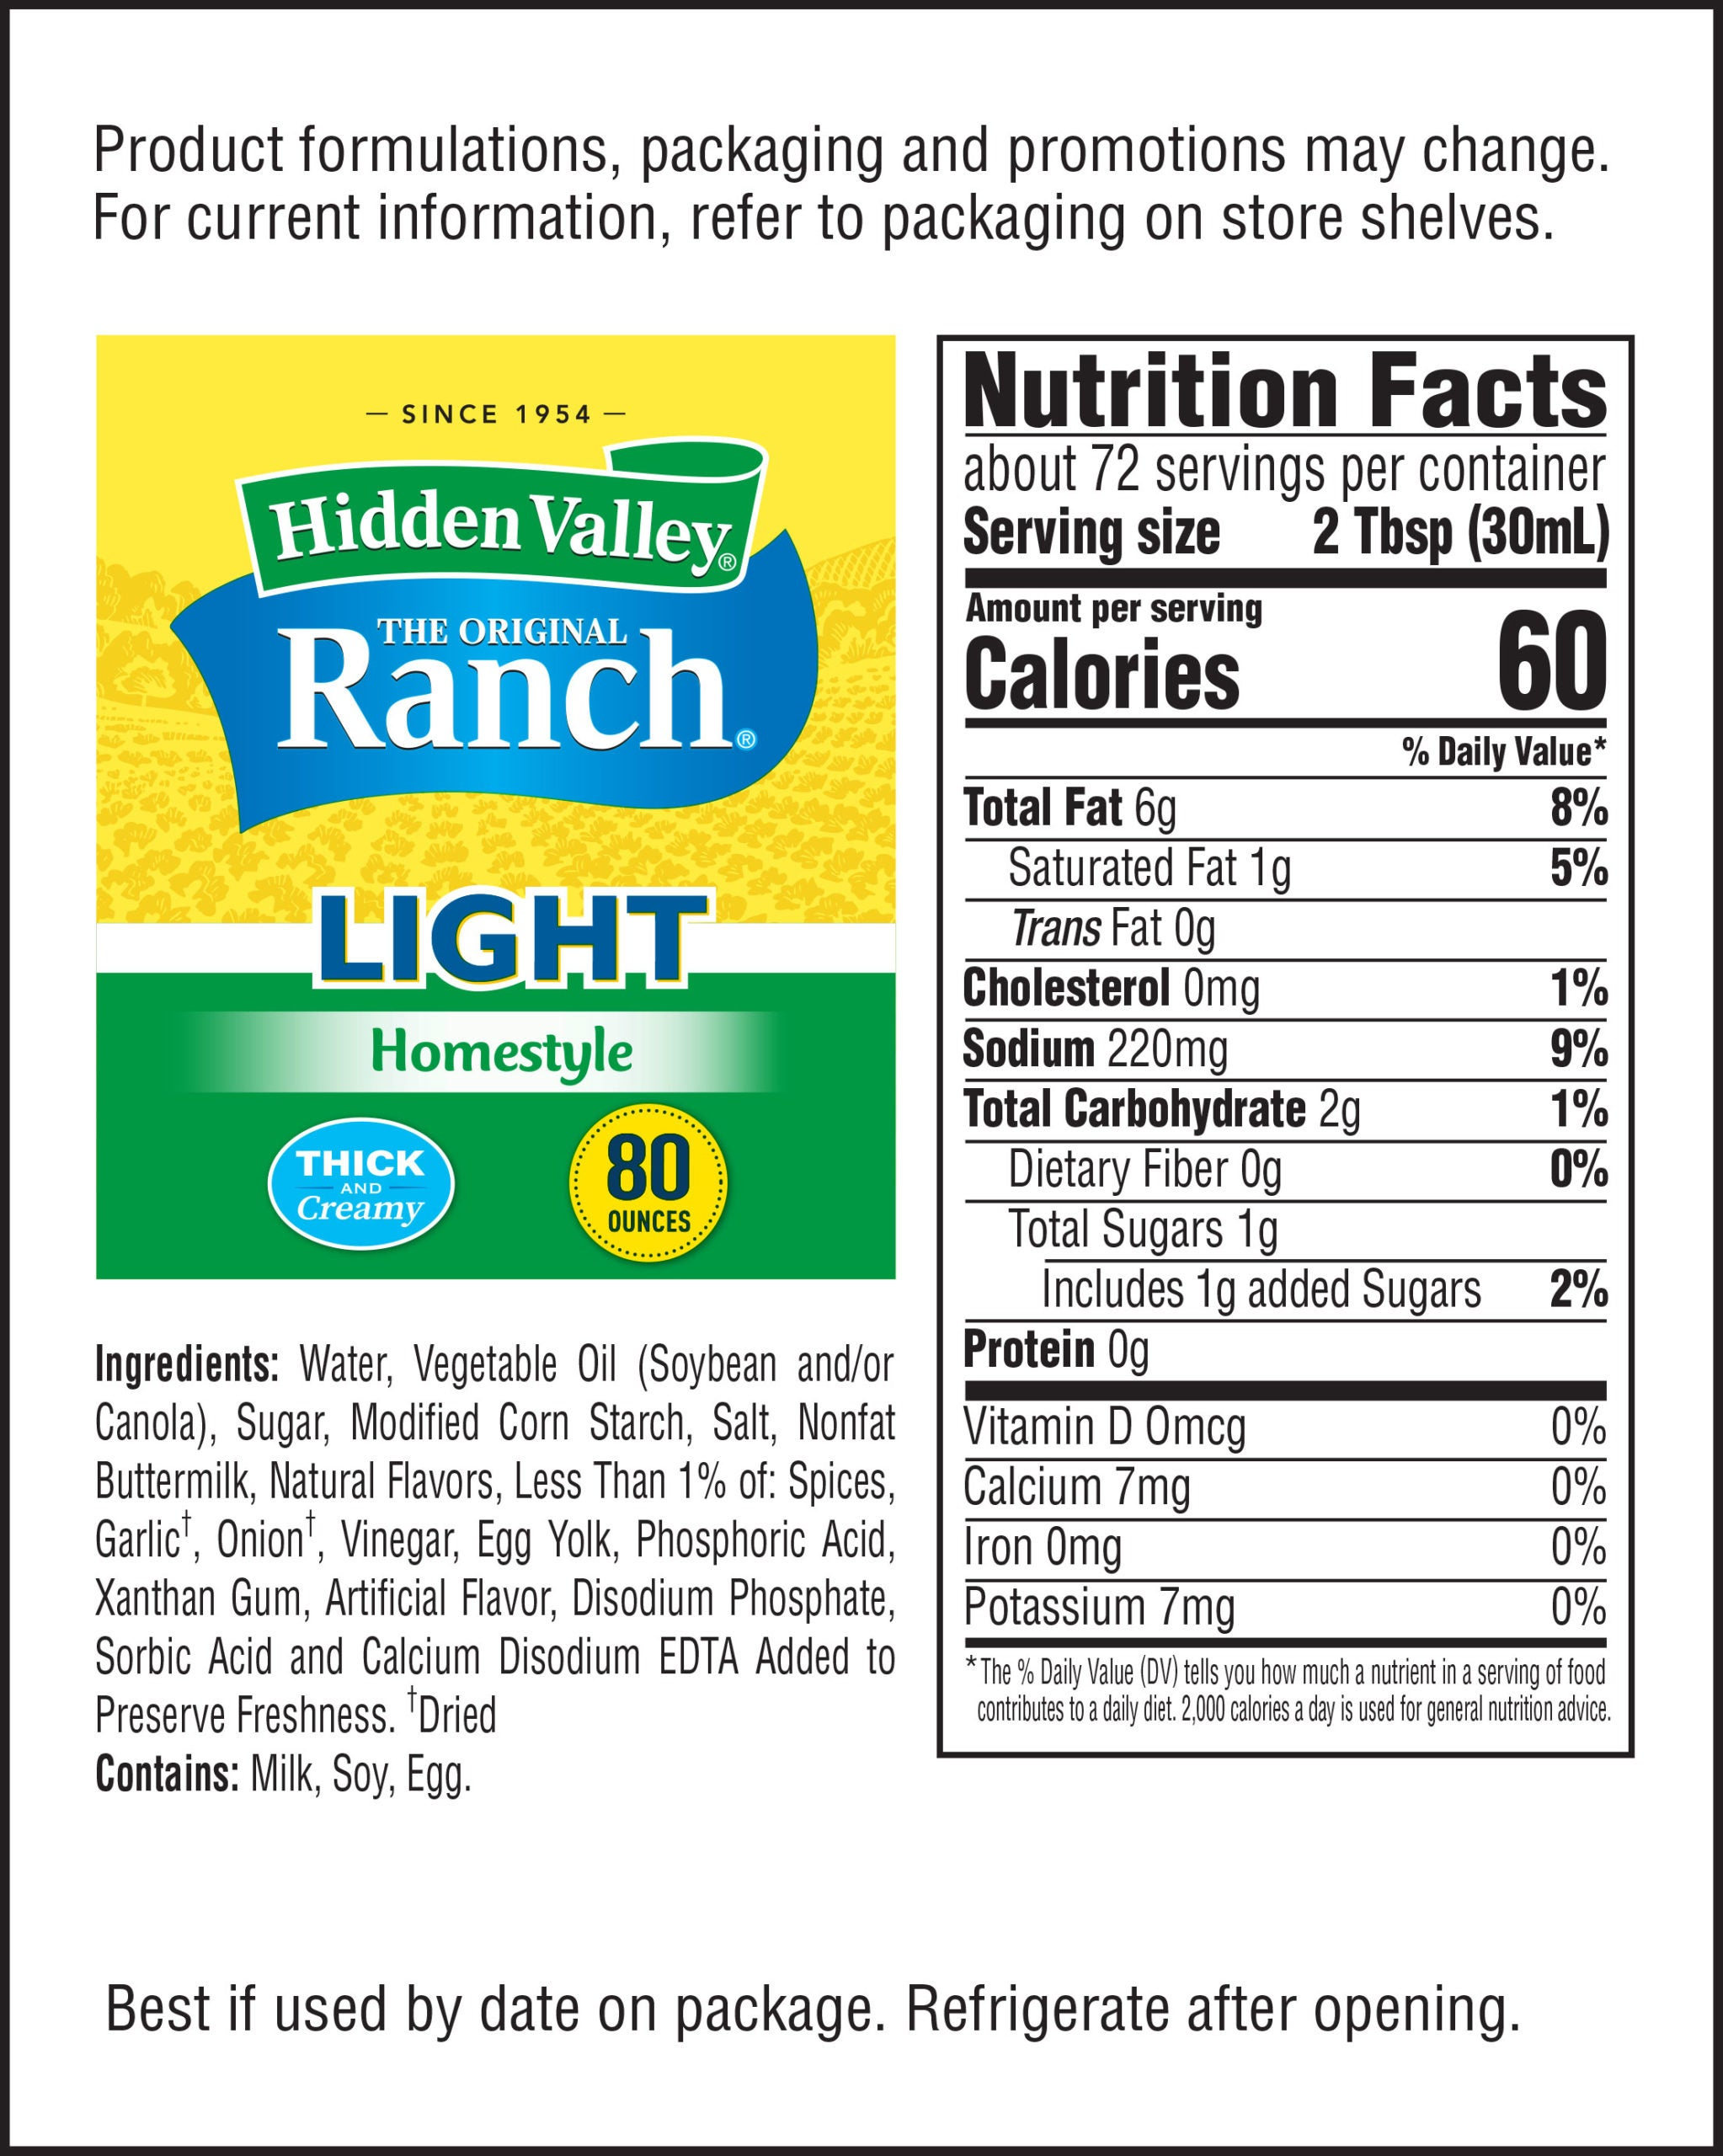 Hidden Valley® Original Ranch® Homestyle Light Topping & Dressing nutritional facts